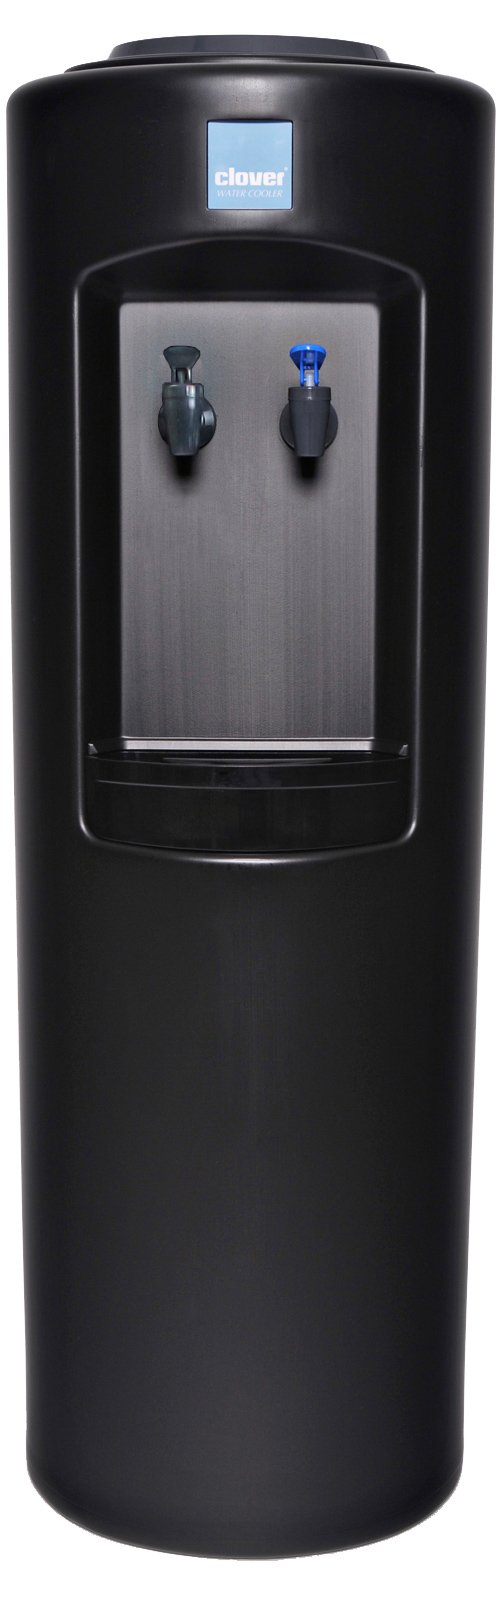 Clover B7b Room Temp And Cold Bottled Water Dispenser